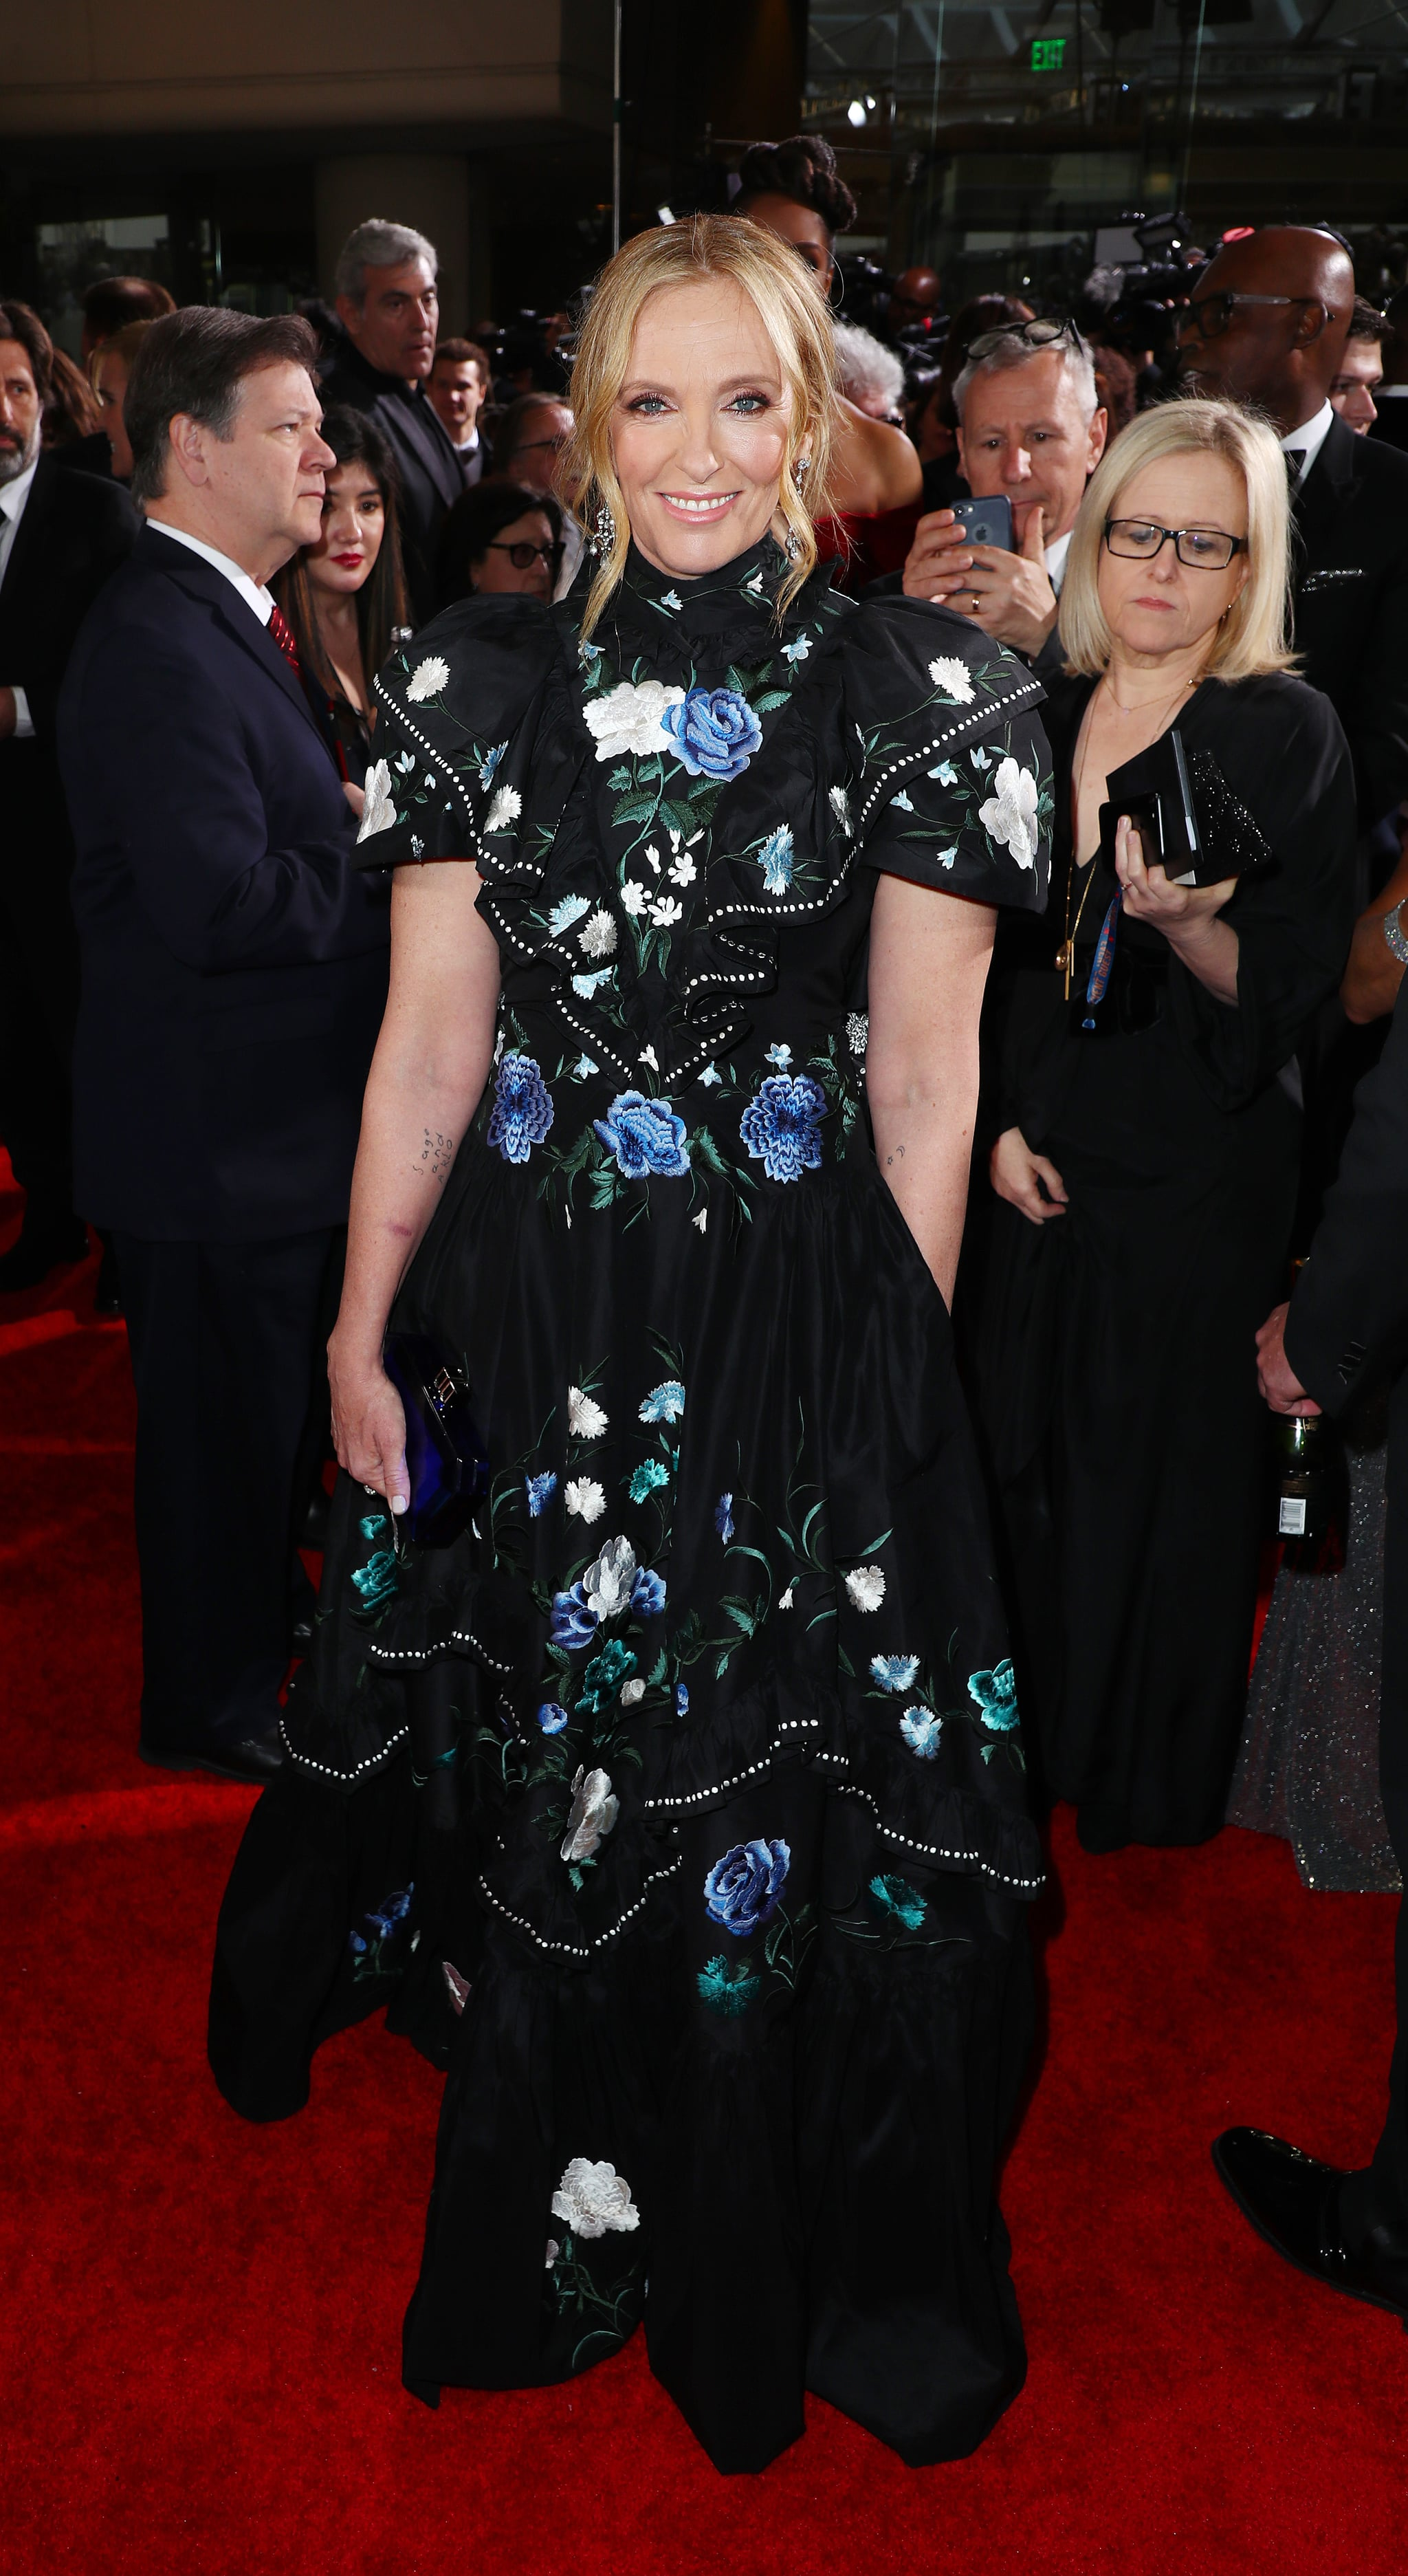 Toni Collette at the 2020 Golden Globes | The Red Carpet Looks at the 2020  Golden Globes Are Everything We Want and More | POPSUGAR Fashion Photo 69